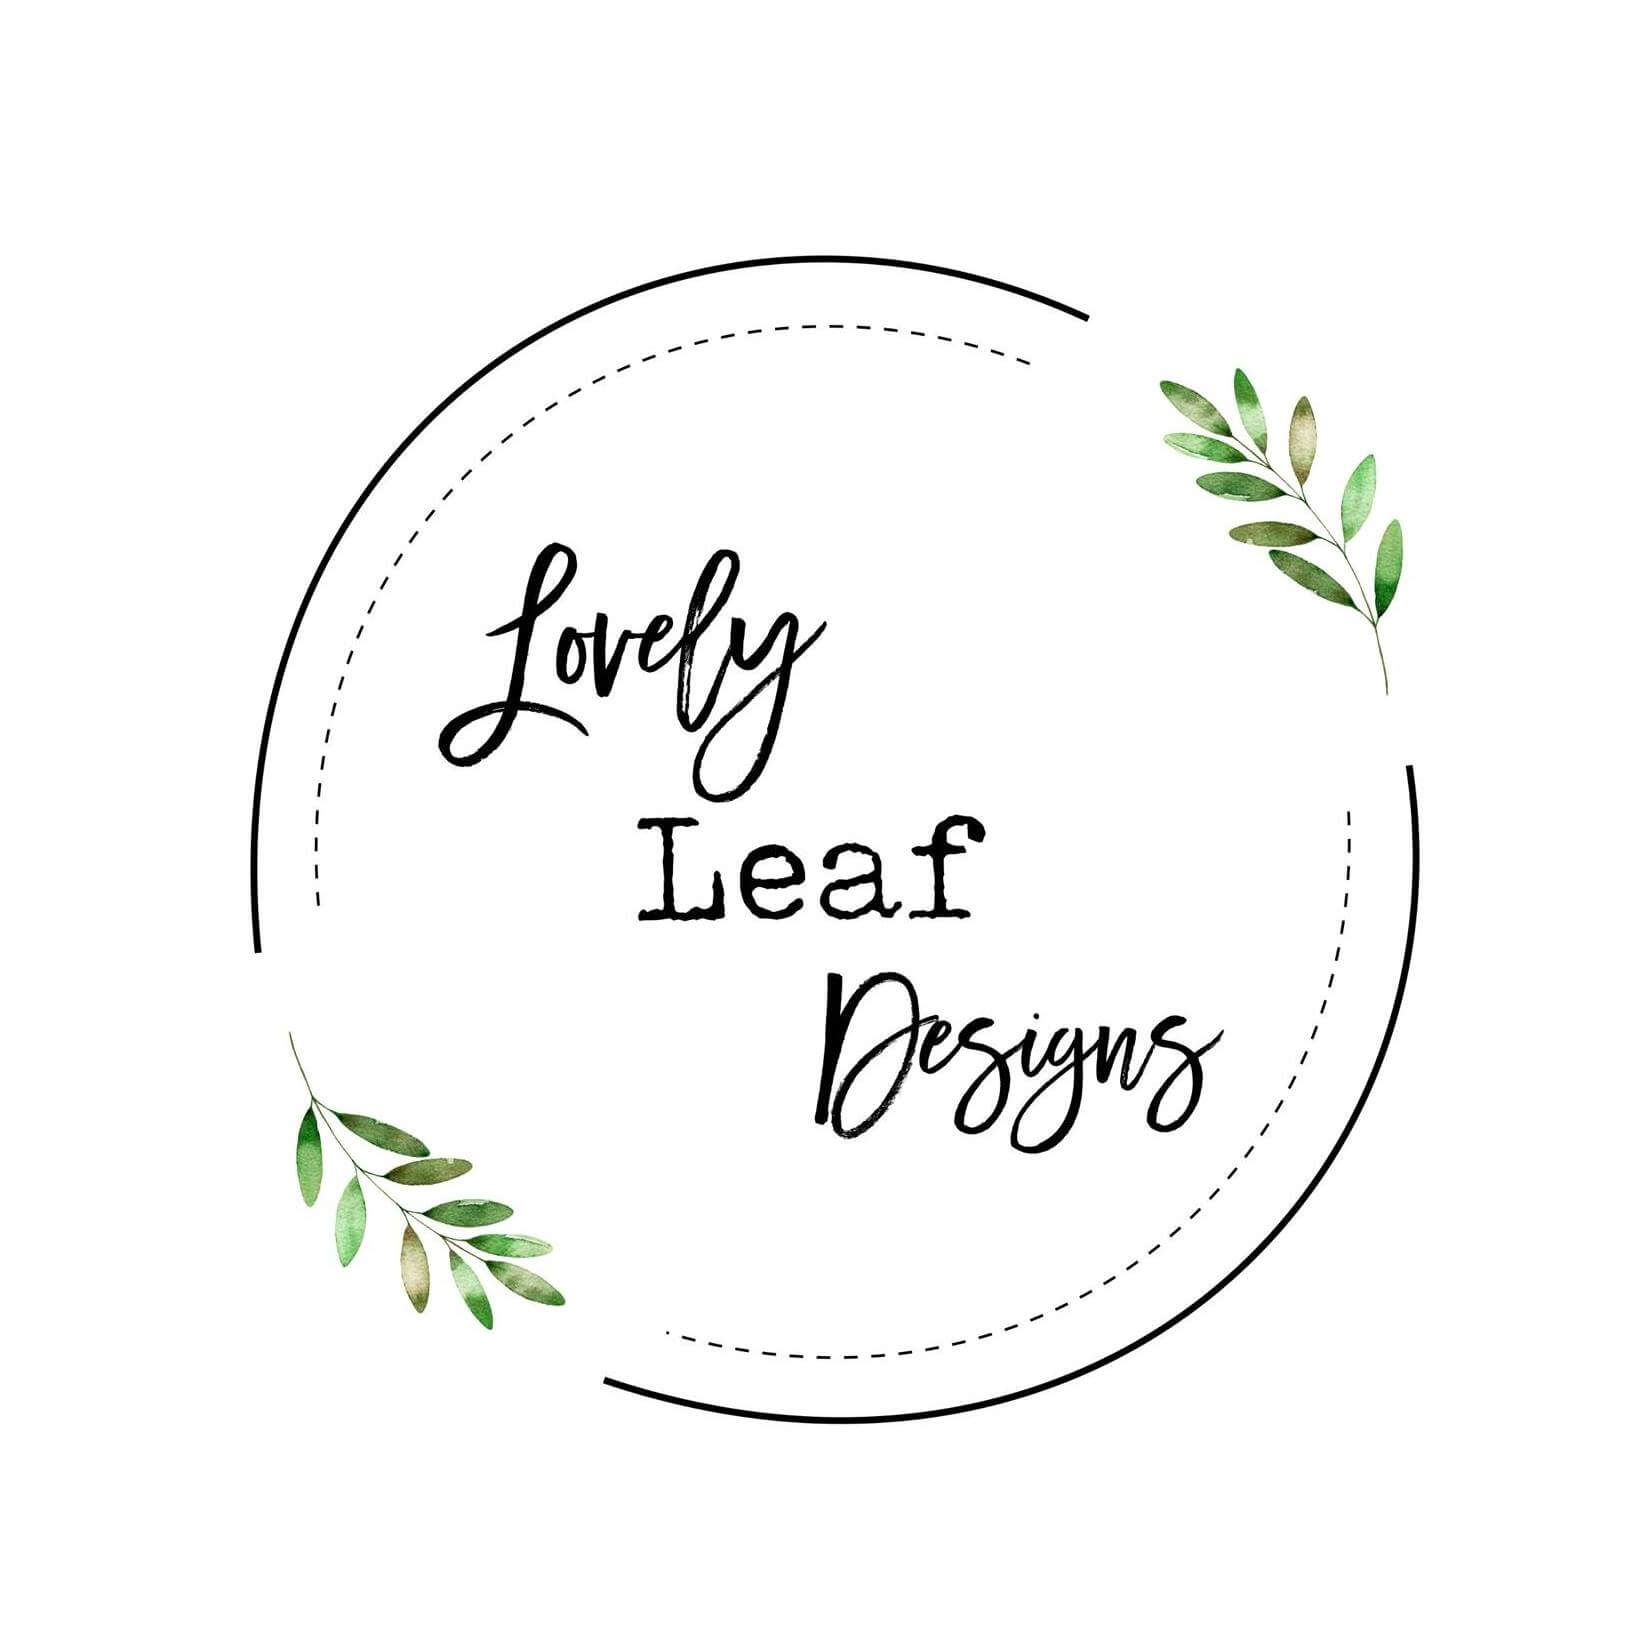 Lovely Leaf Designs